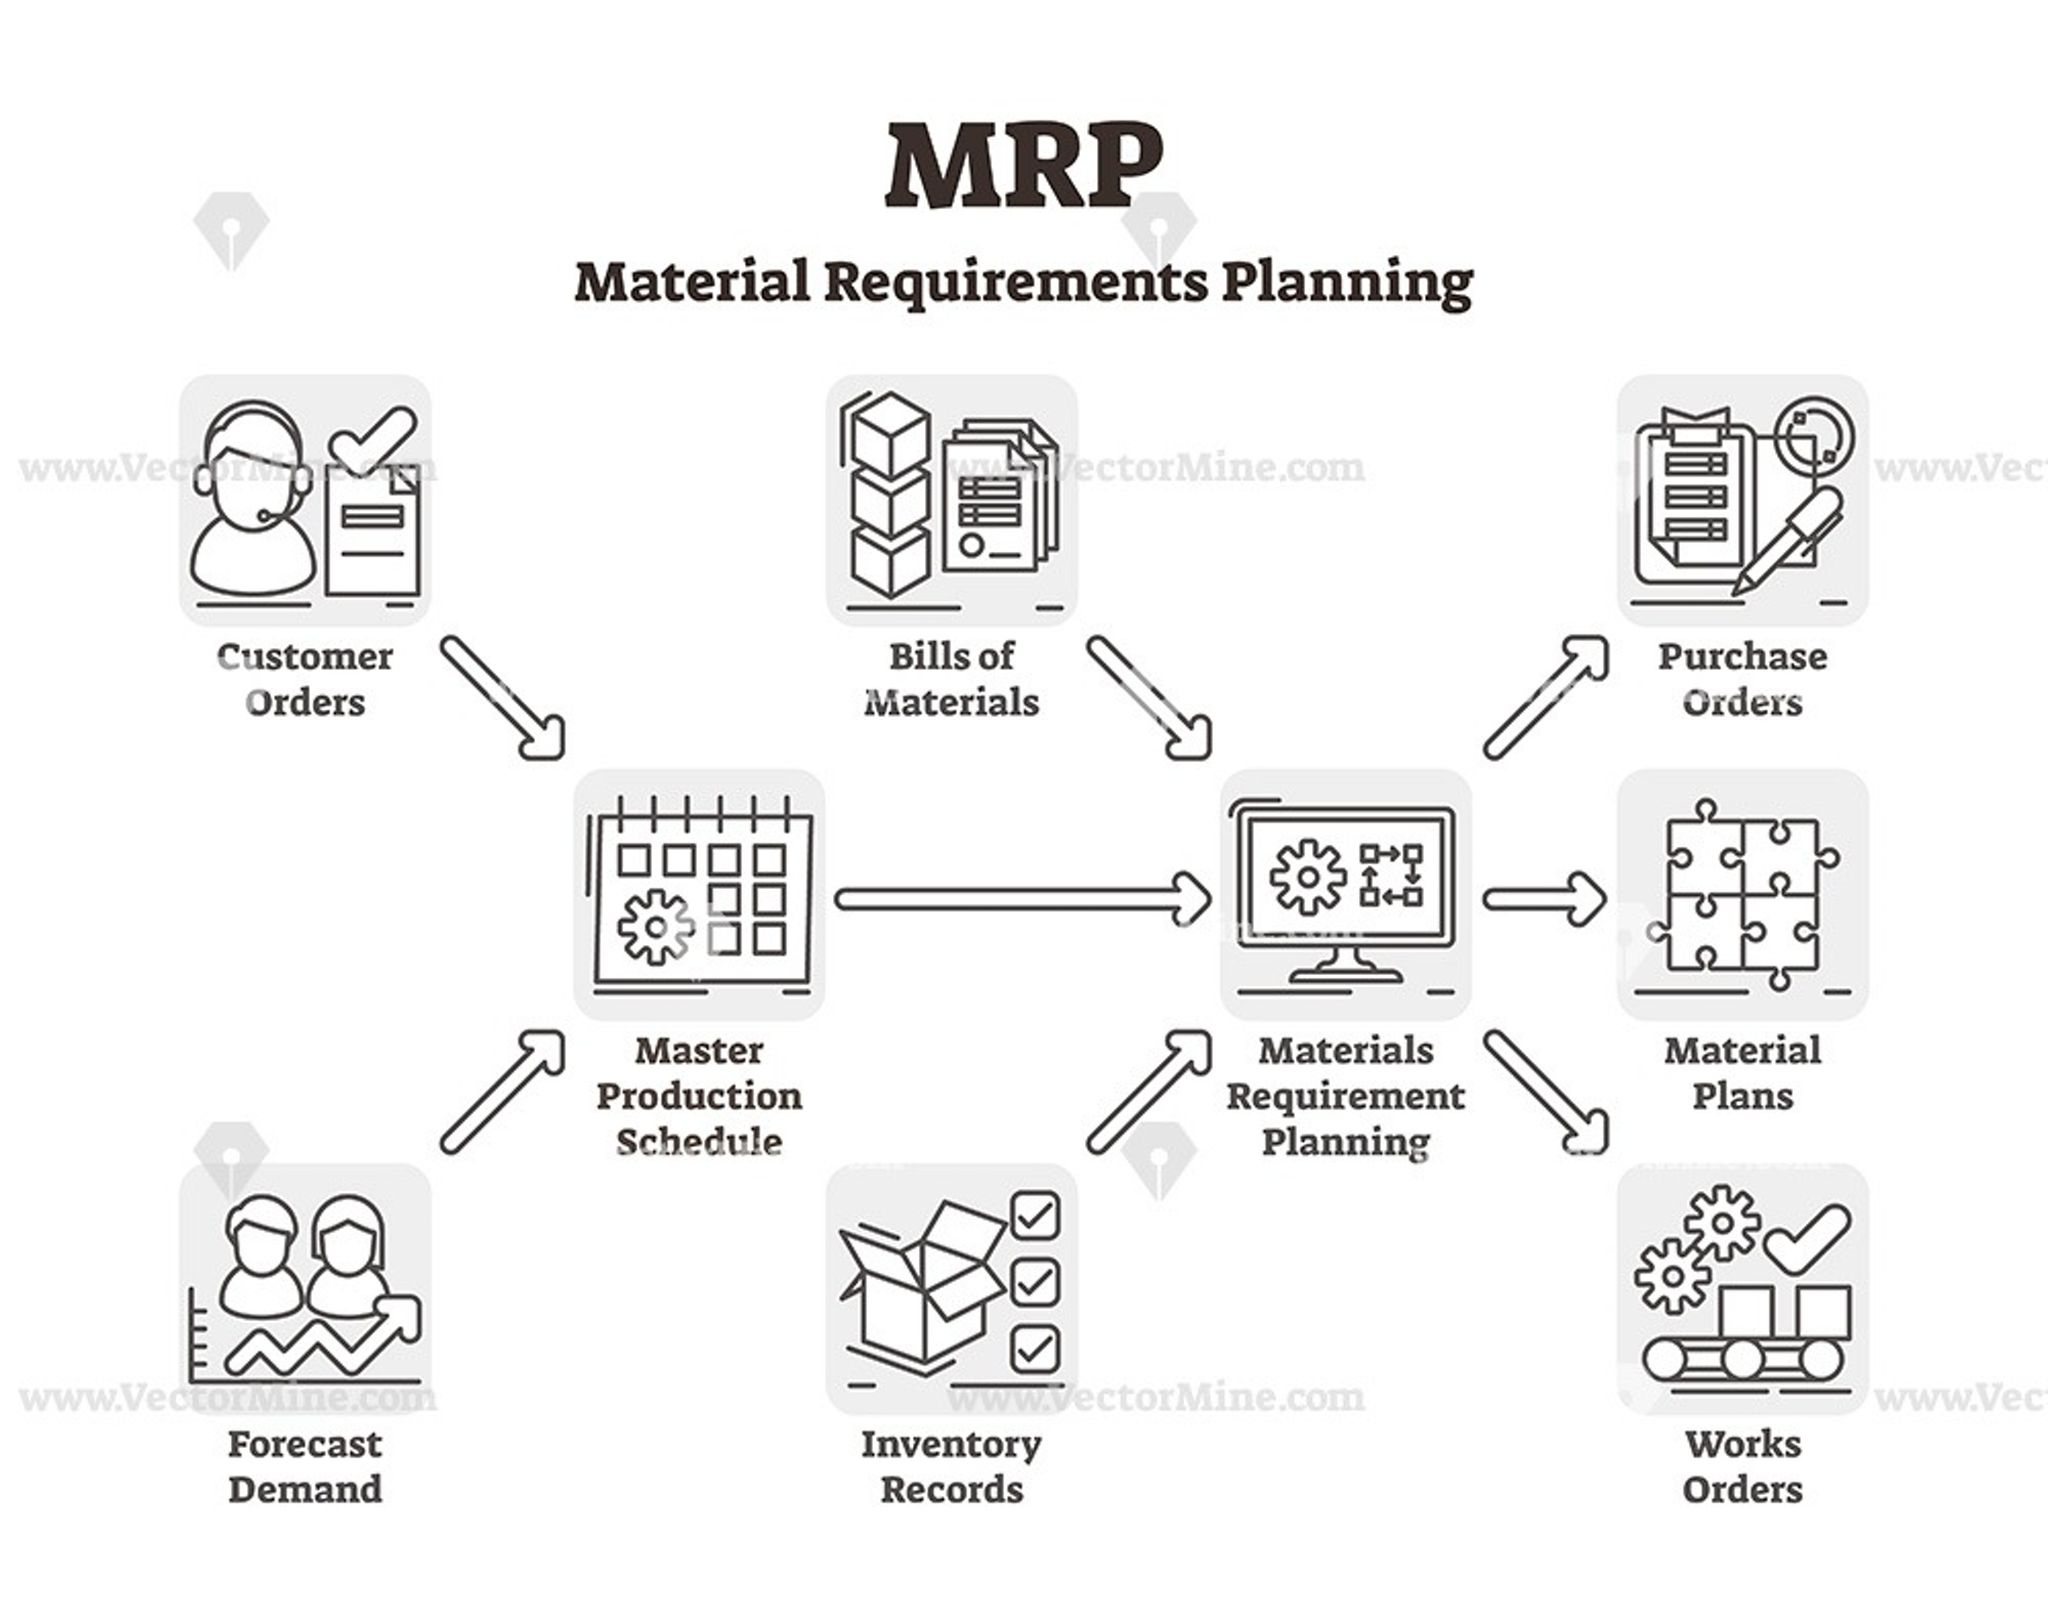 MRP outline vector illustration diagram scheme with icons